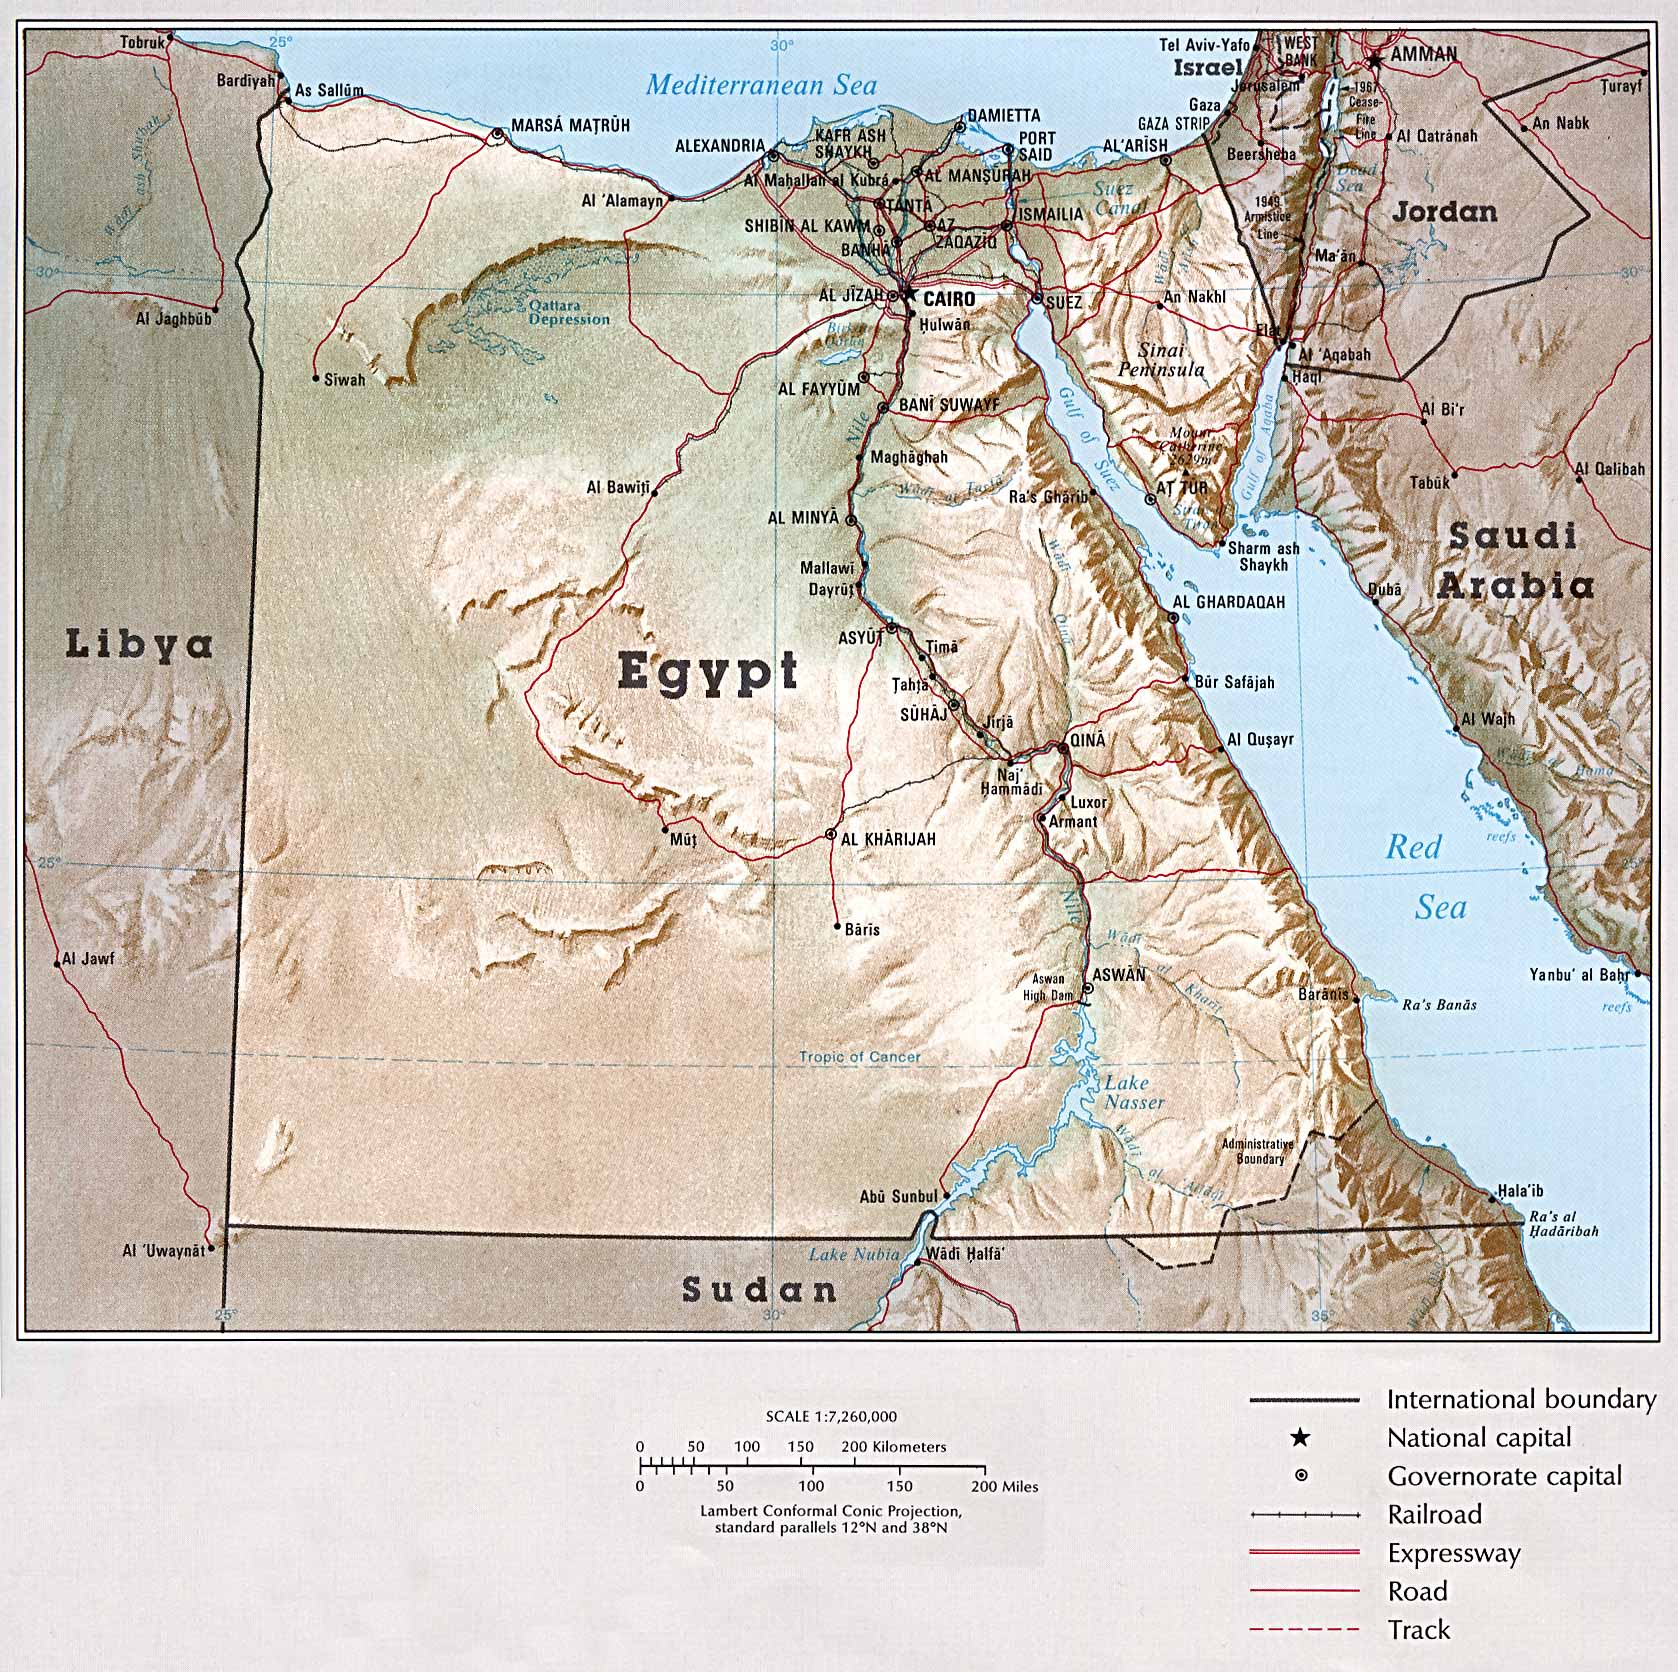 Egypt. Country Map (518k)